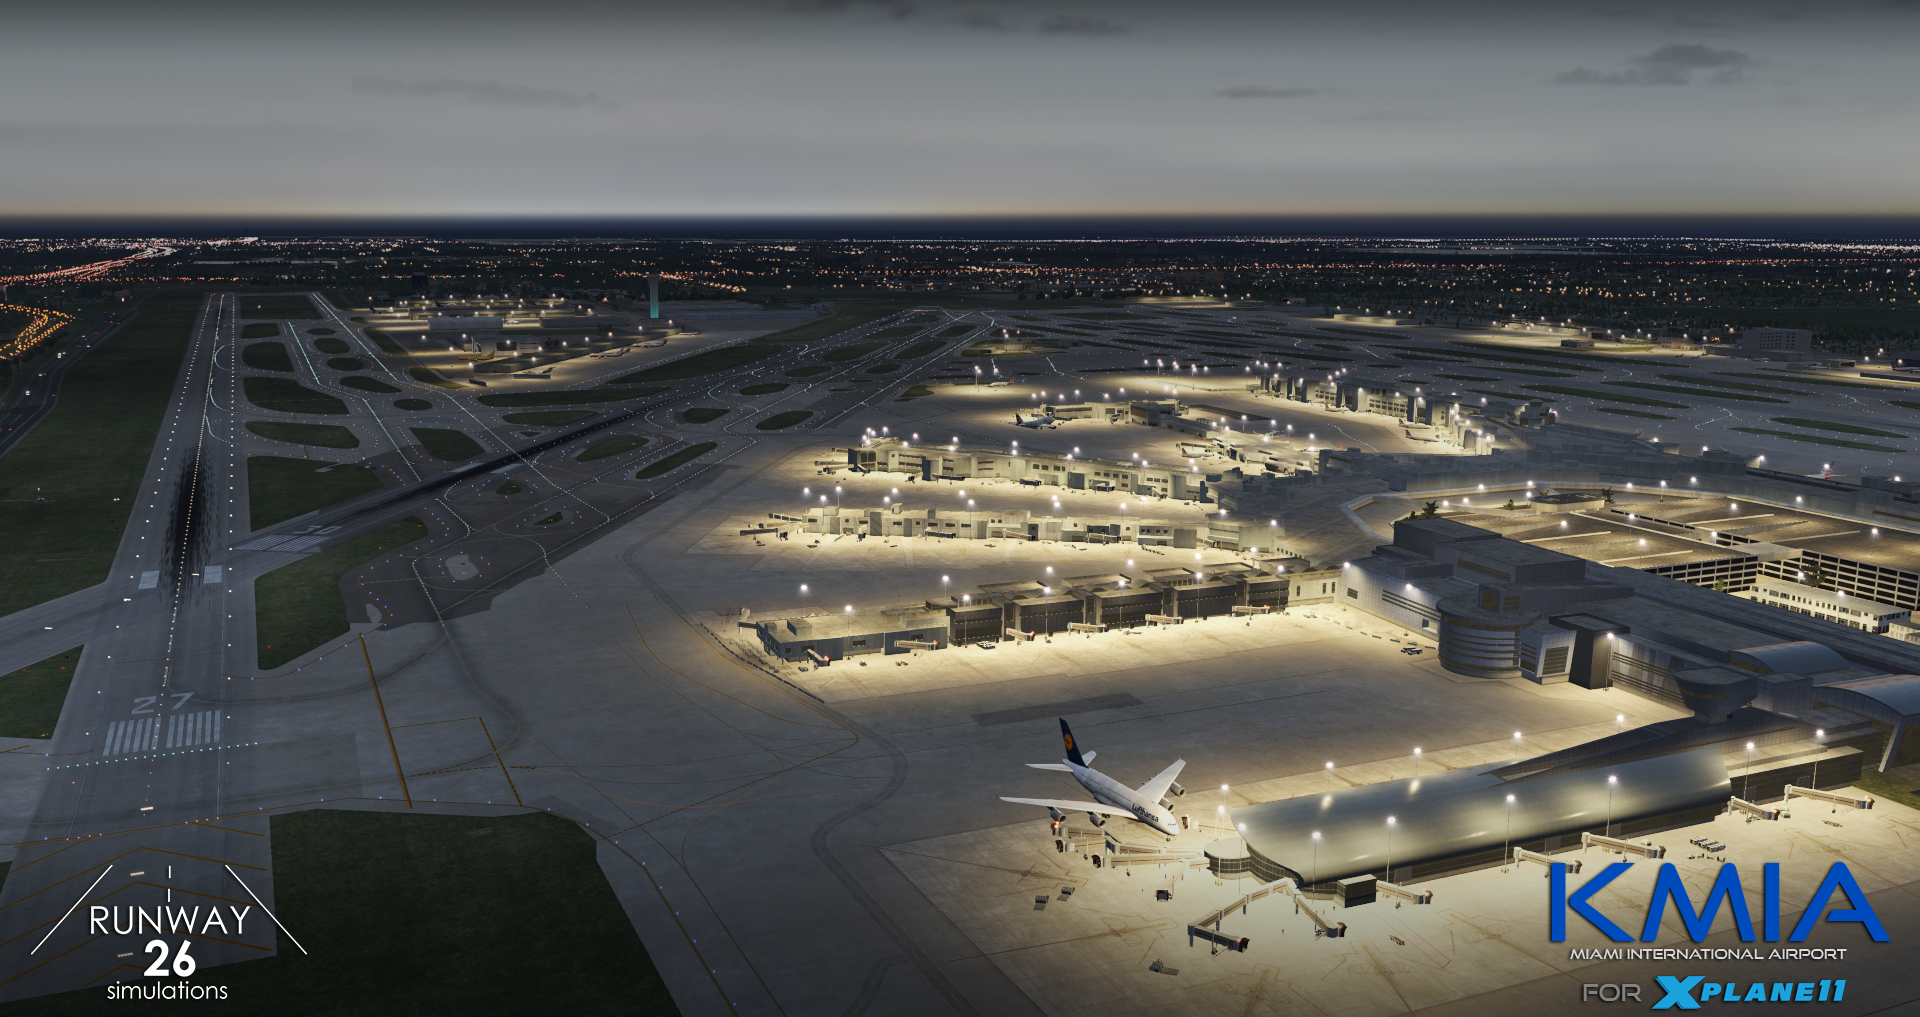 RWY26 SIMULATIONS - KMIA MIAMI INTL. AIRPORT XP11